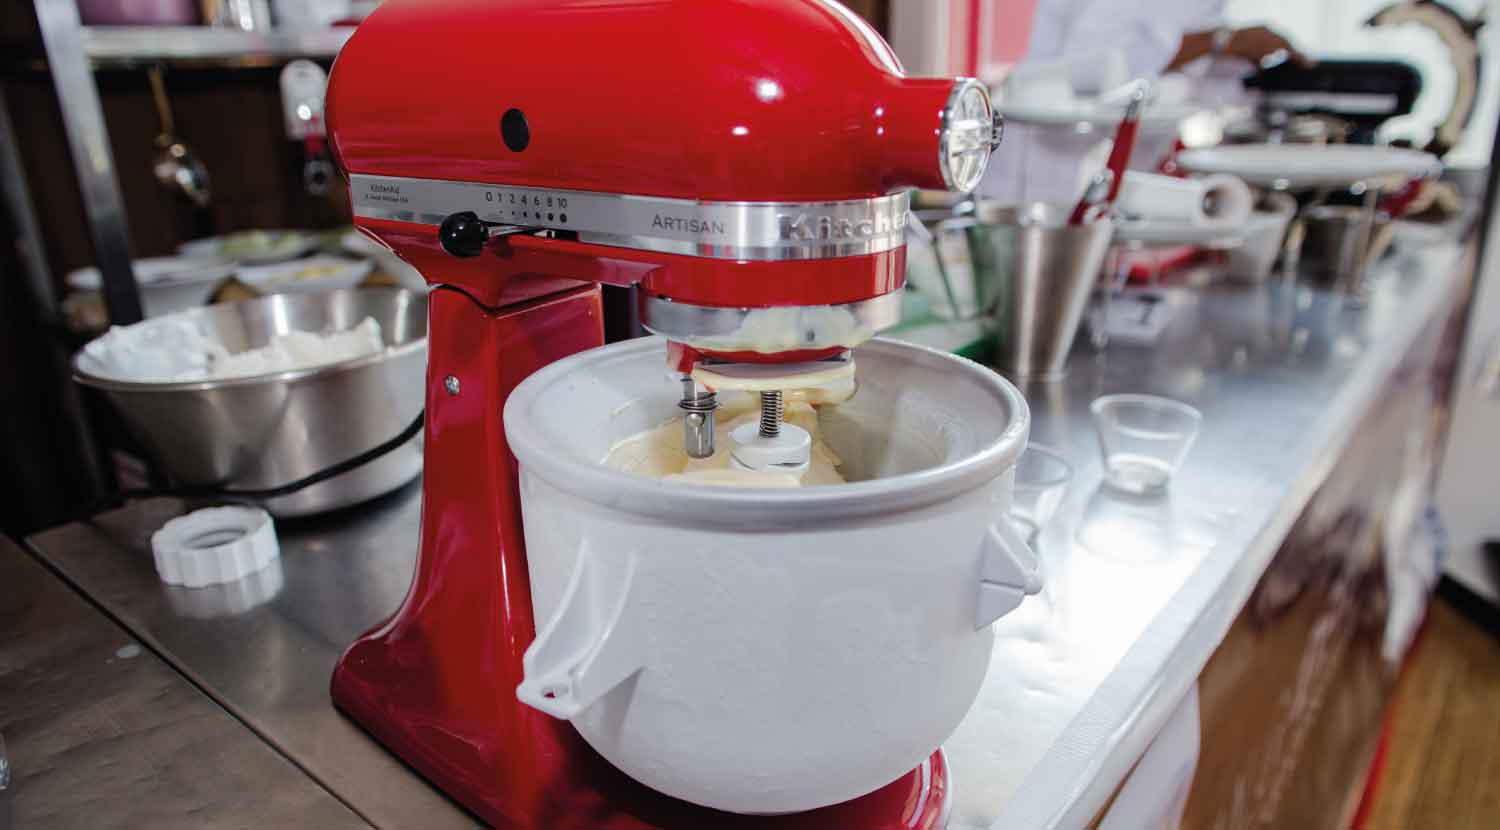 Atelier Kitchen Aid